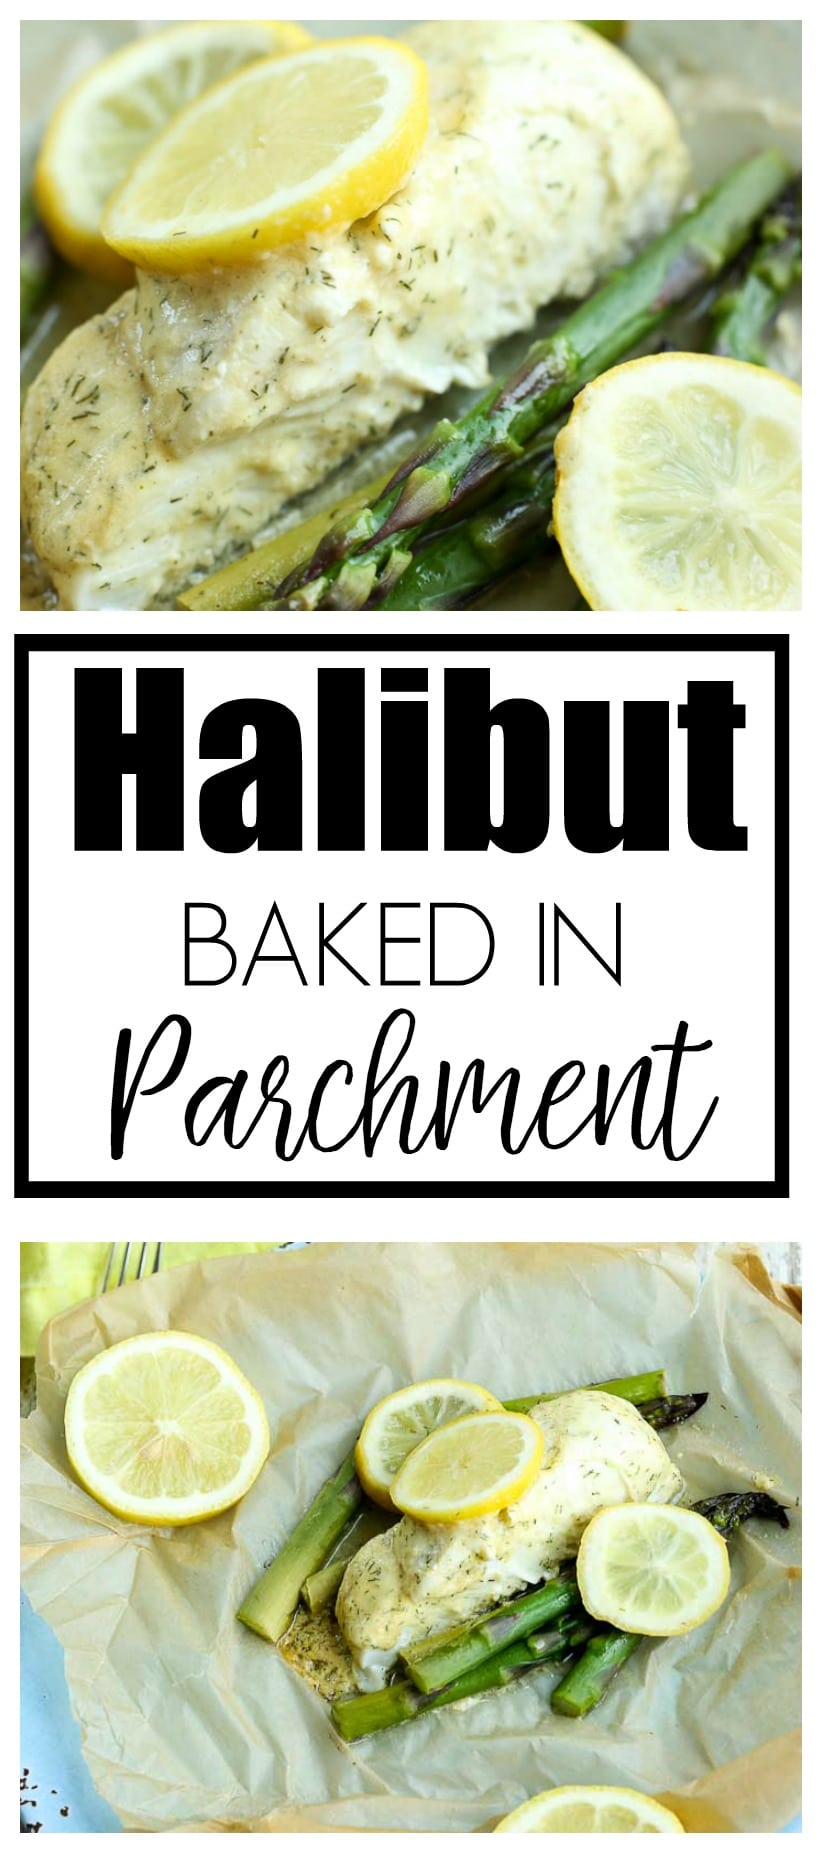 Halibut recipe | easy recipe | healthy dinner recipe | gluten-free | Paleo | dairy-free | quick and easy